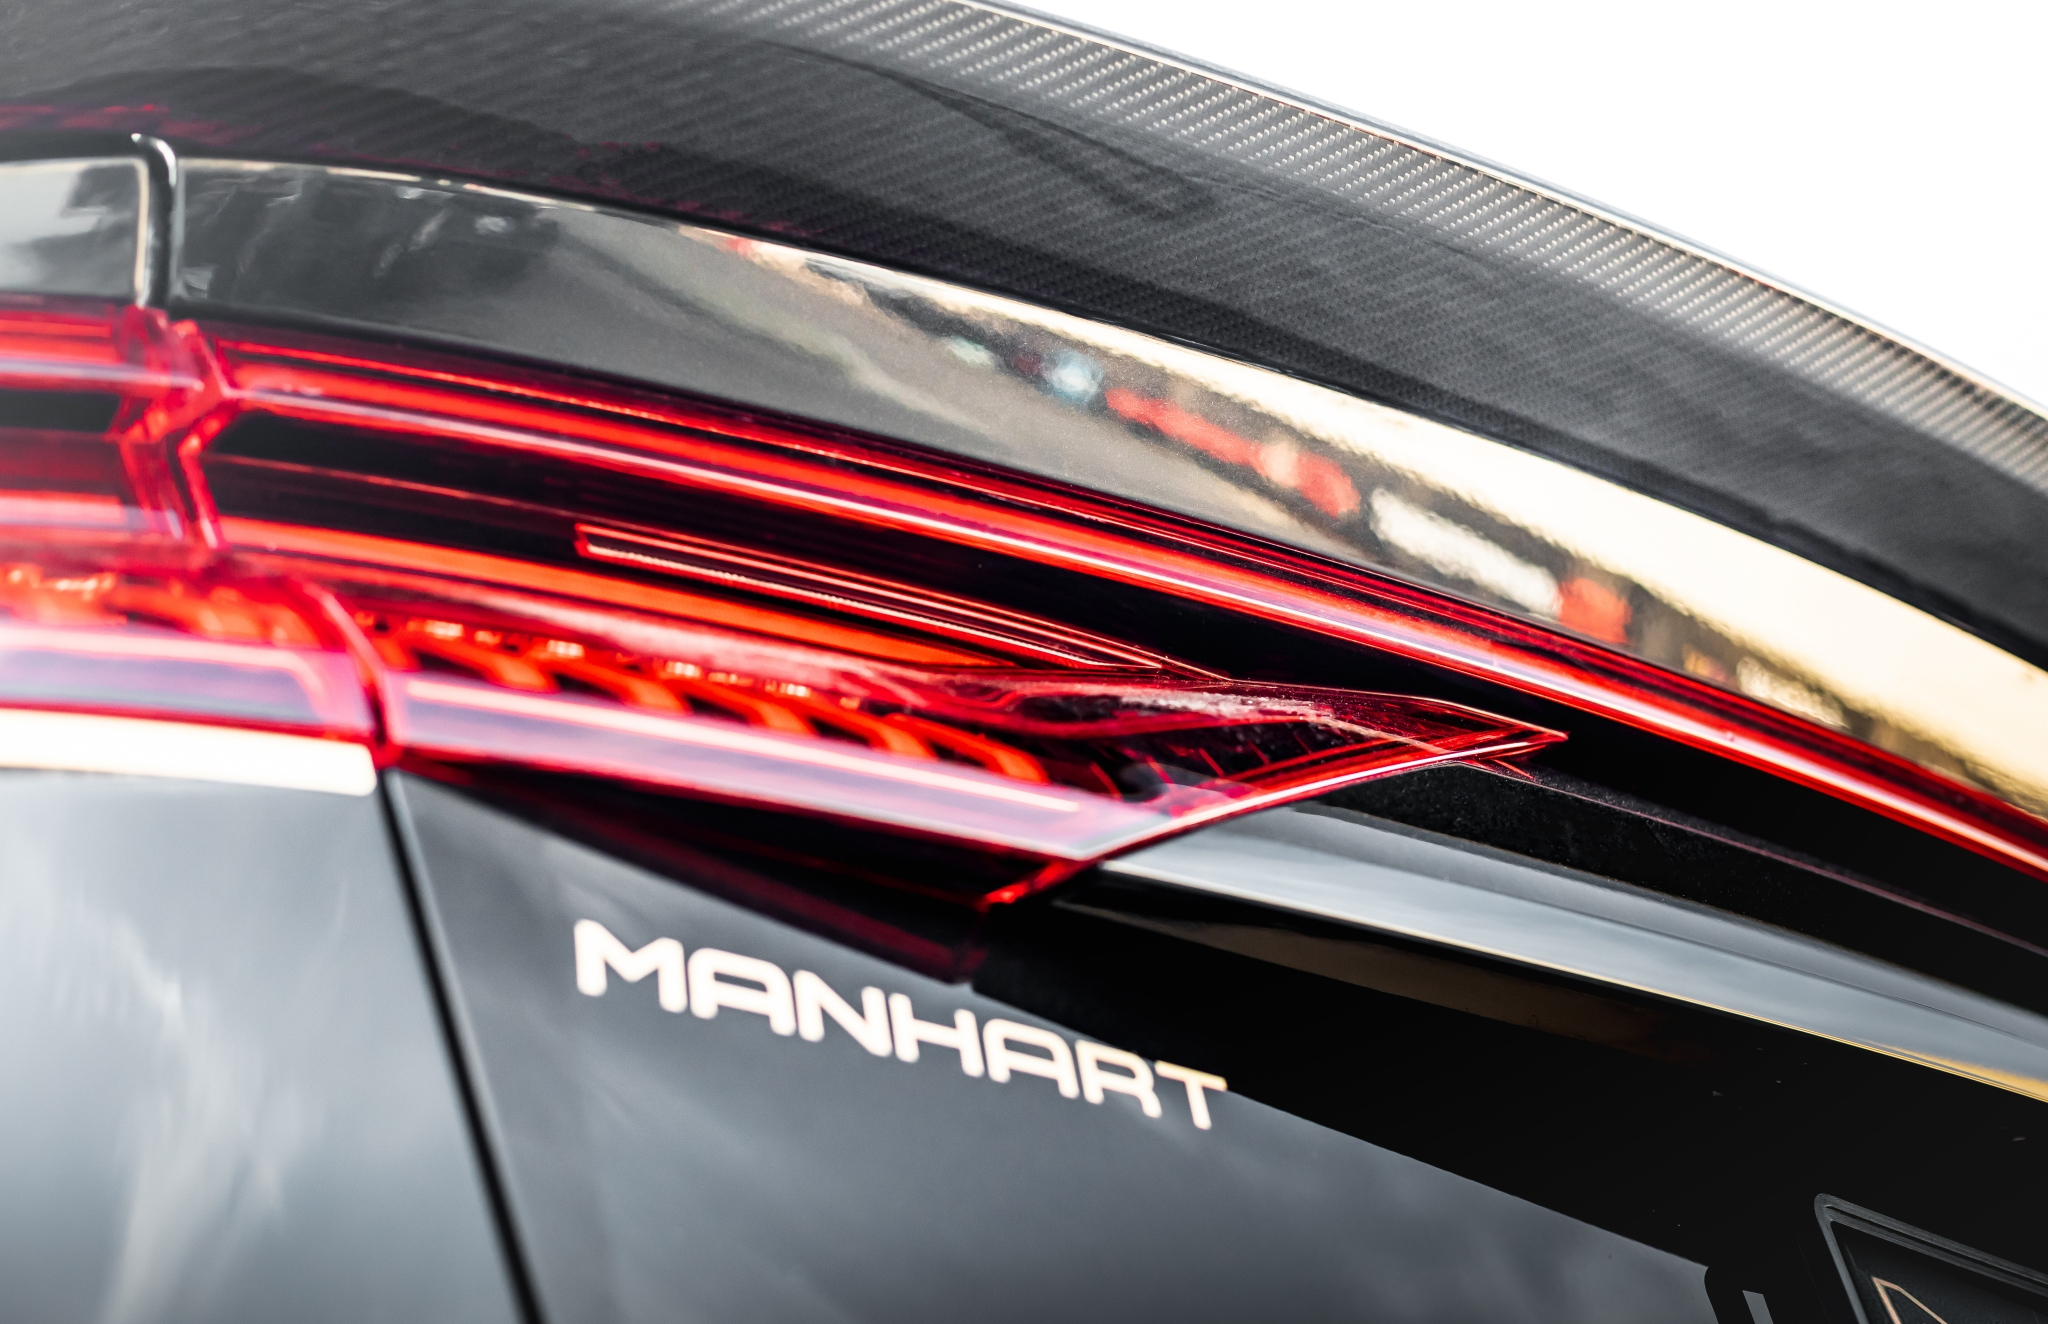 MANHART RQ900 Website 13